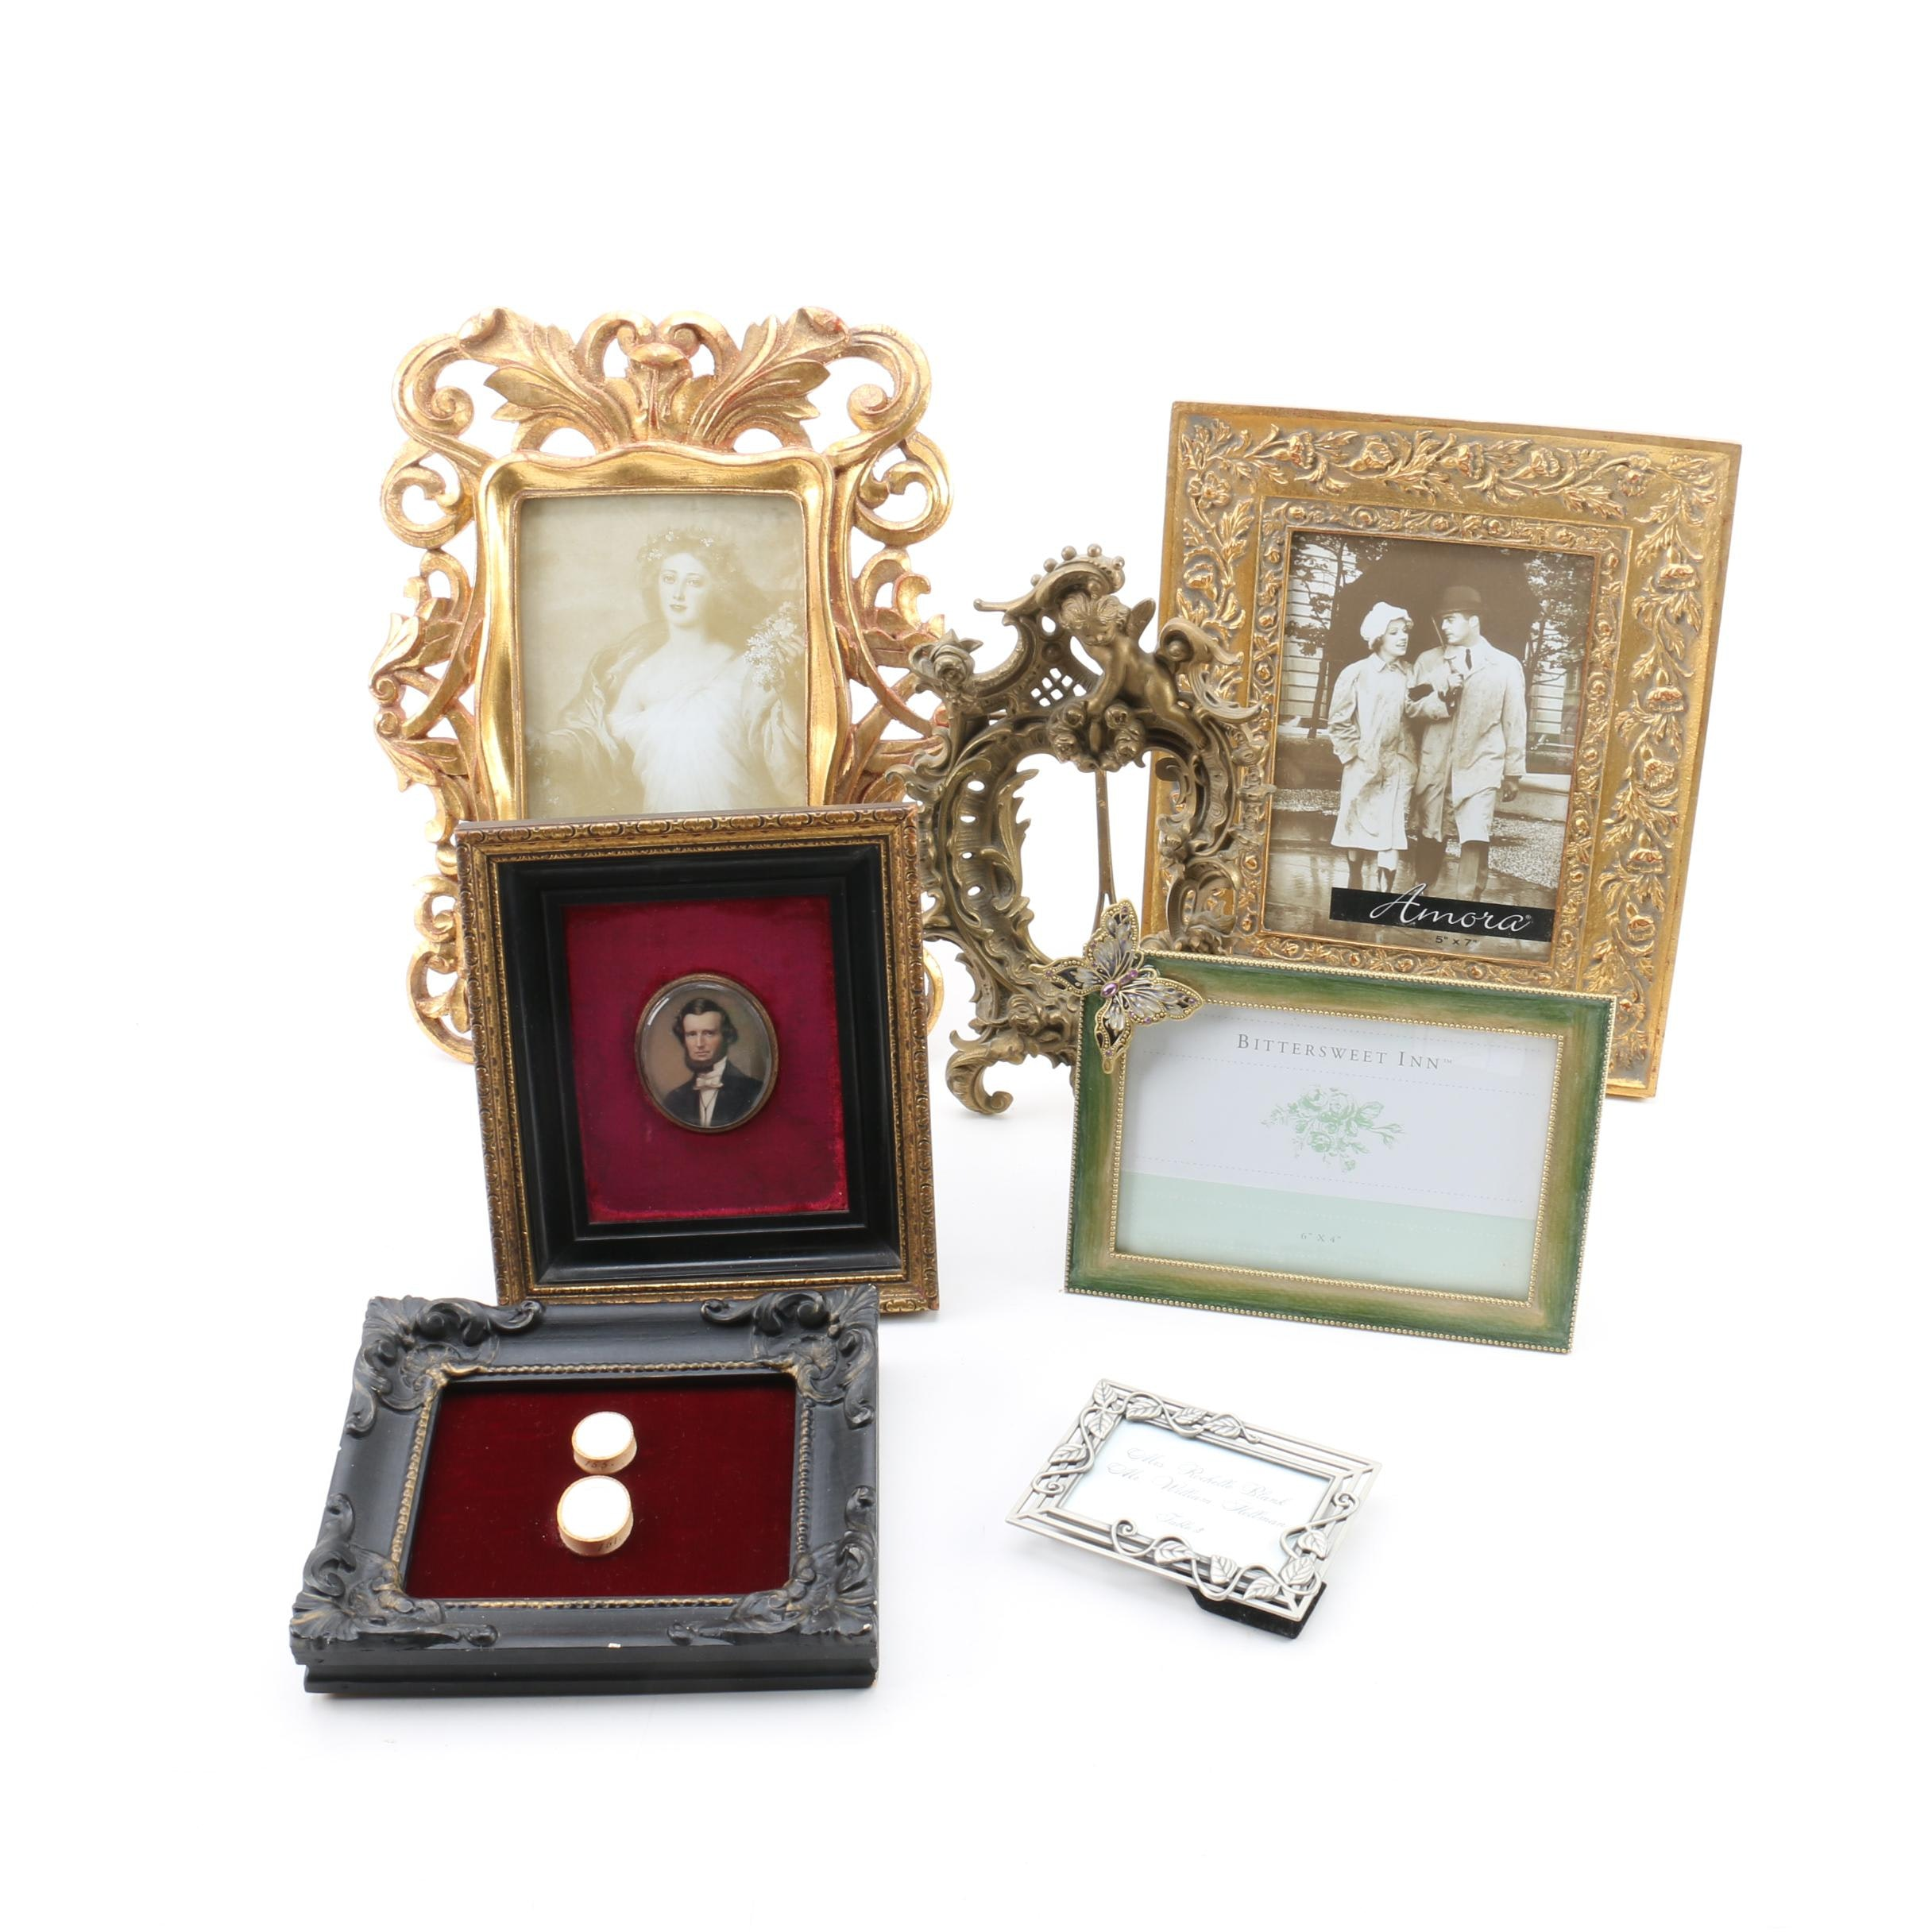 Miniature Oil Portrait of a Gentleman and Small Decorative Frames